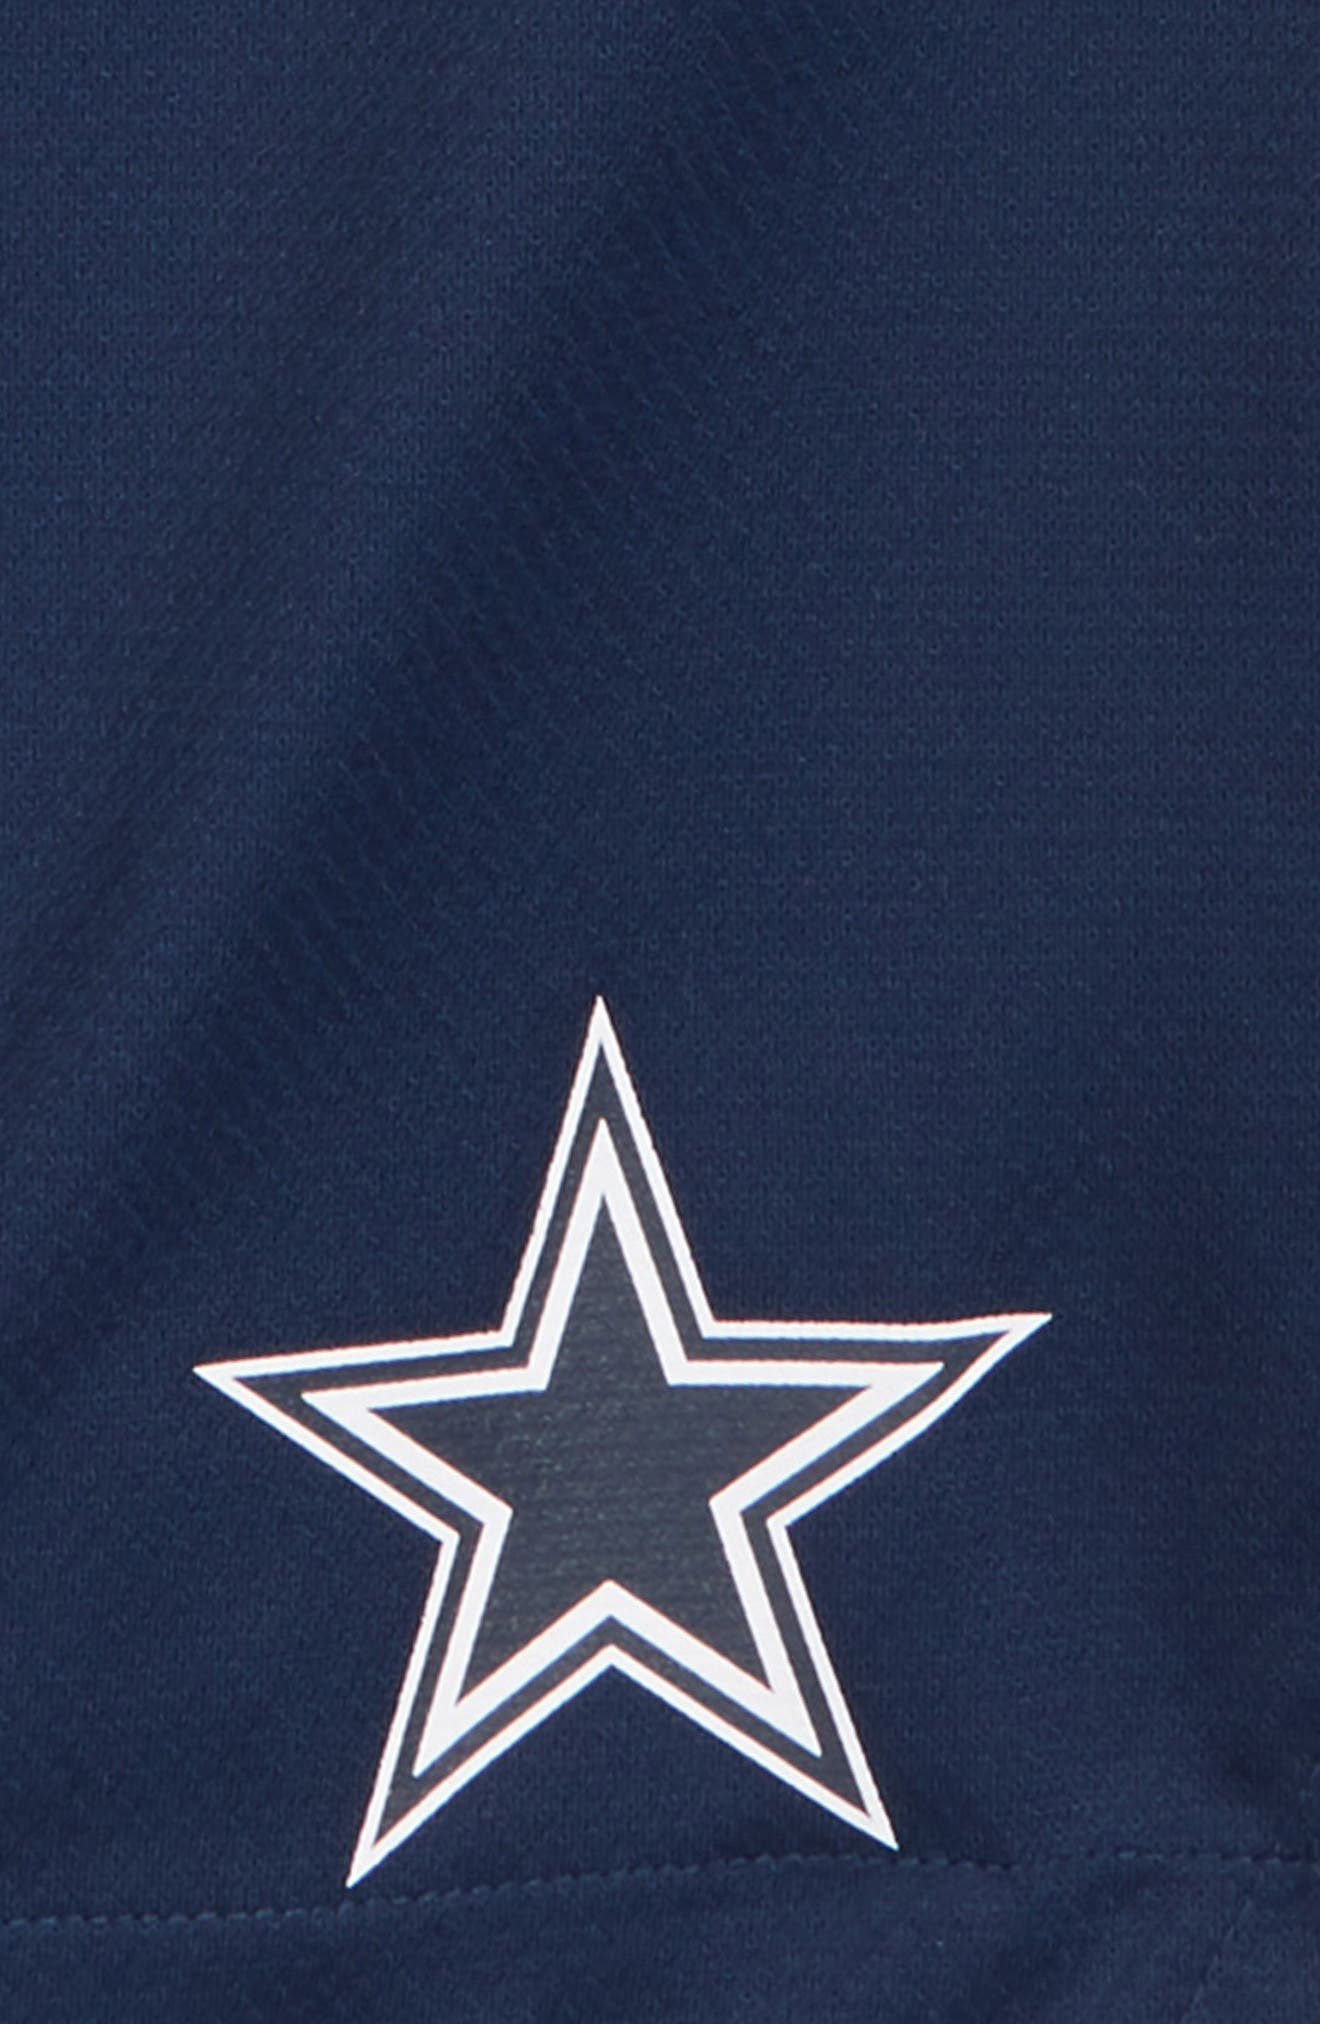 Nike NFL Dallas Cowboys Dry Knit Shorts,                             Alternate thumbnail 2, color,                             NAVY